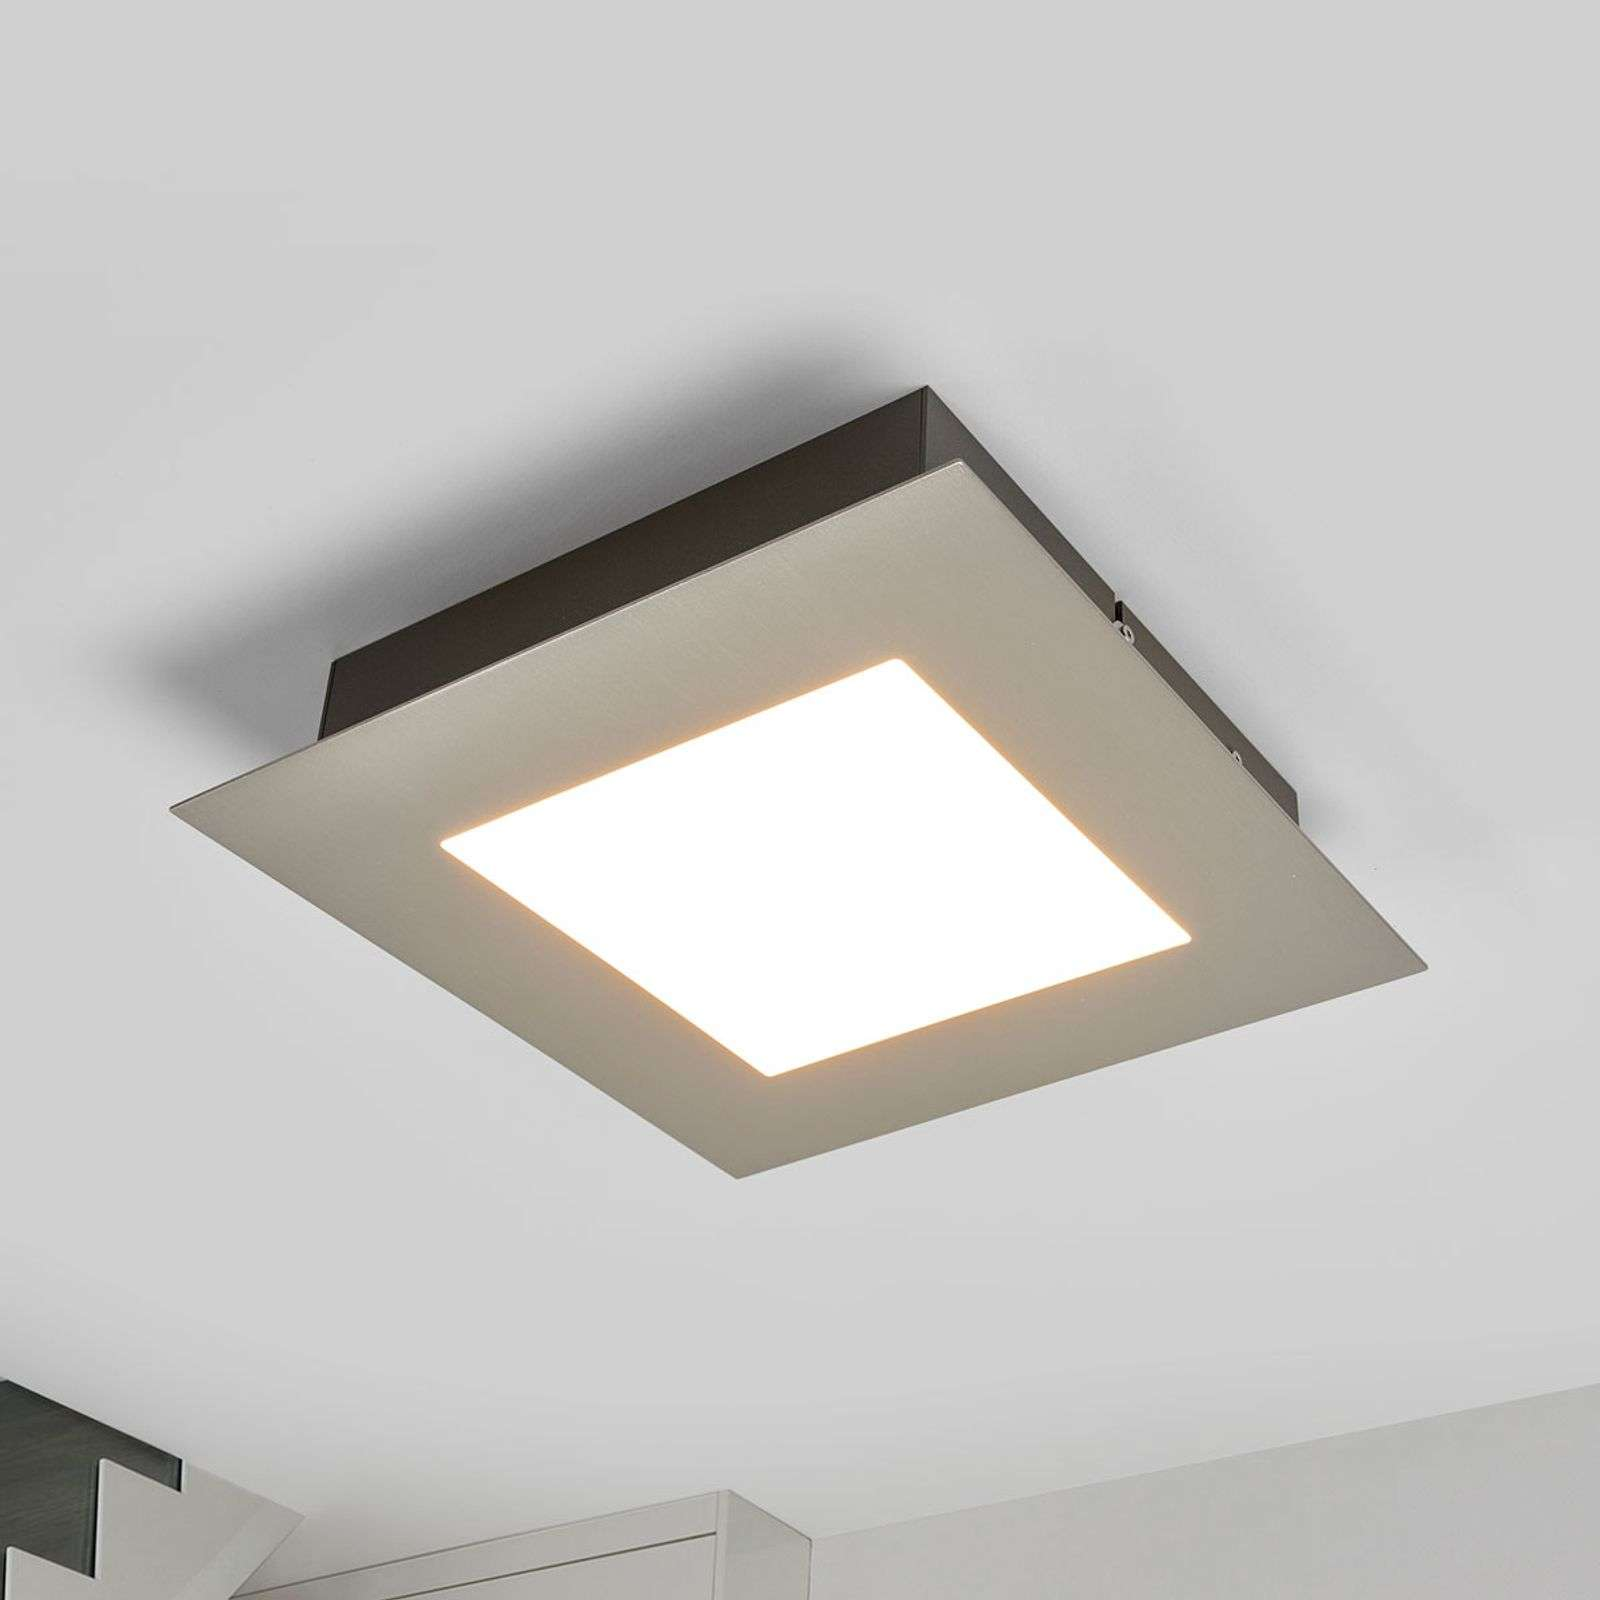 Plafonnier carré LED Deno, nickel mat